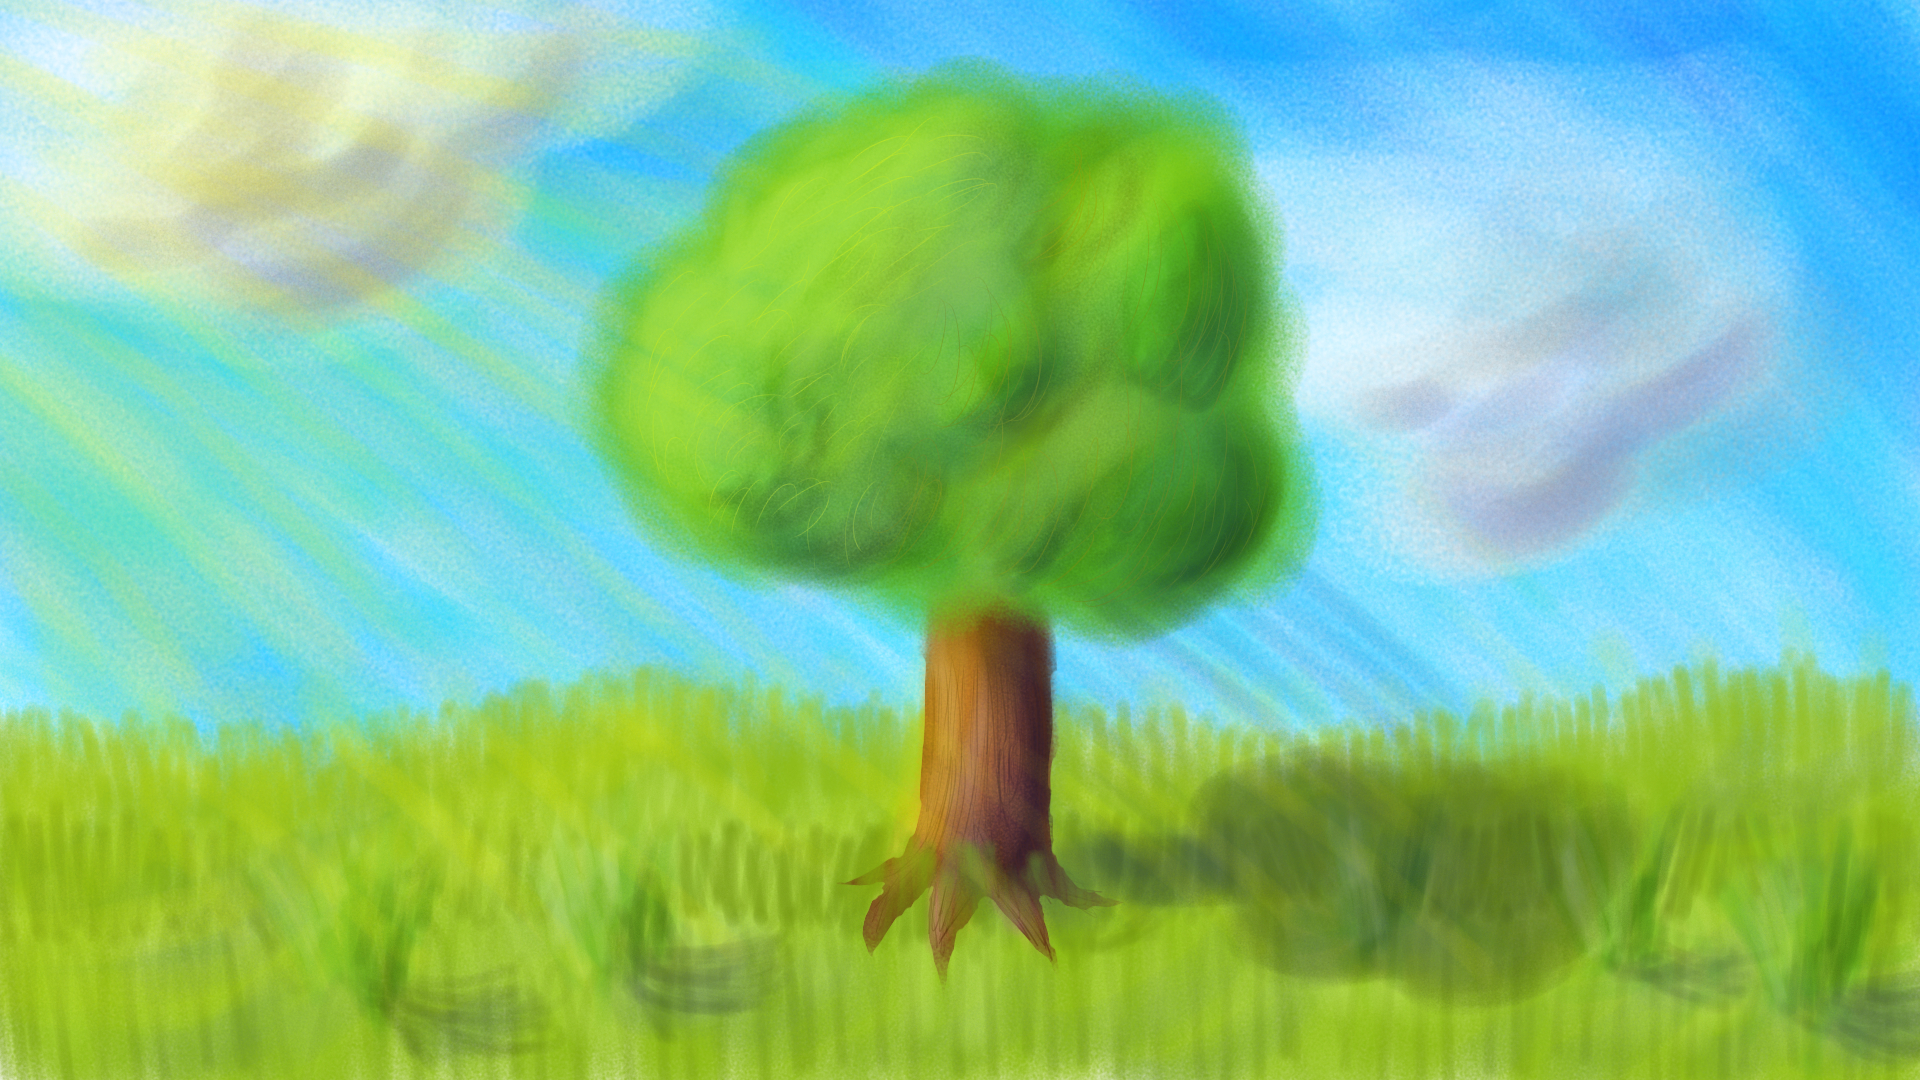 A Tree. by Maverik-Soldier